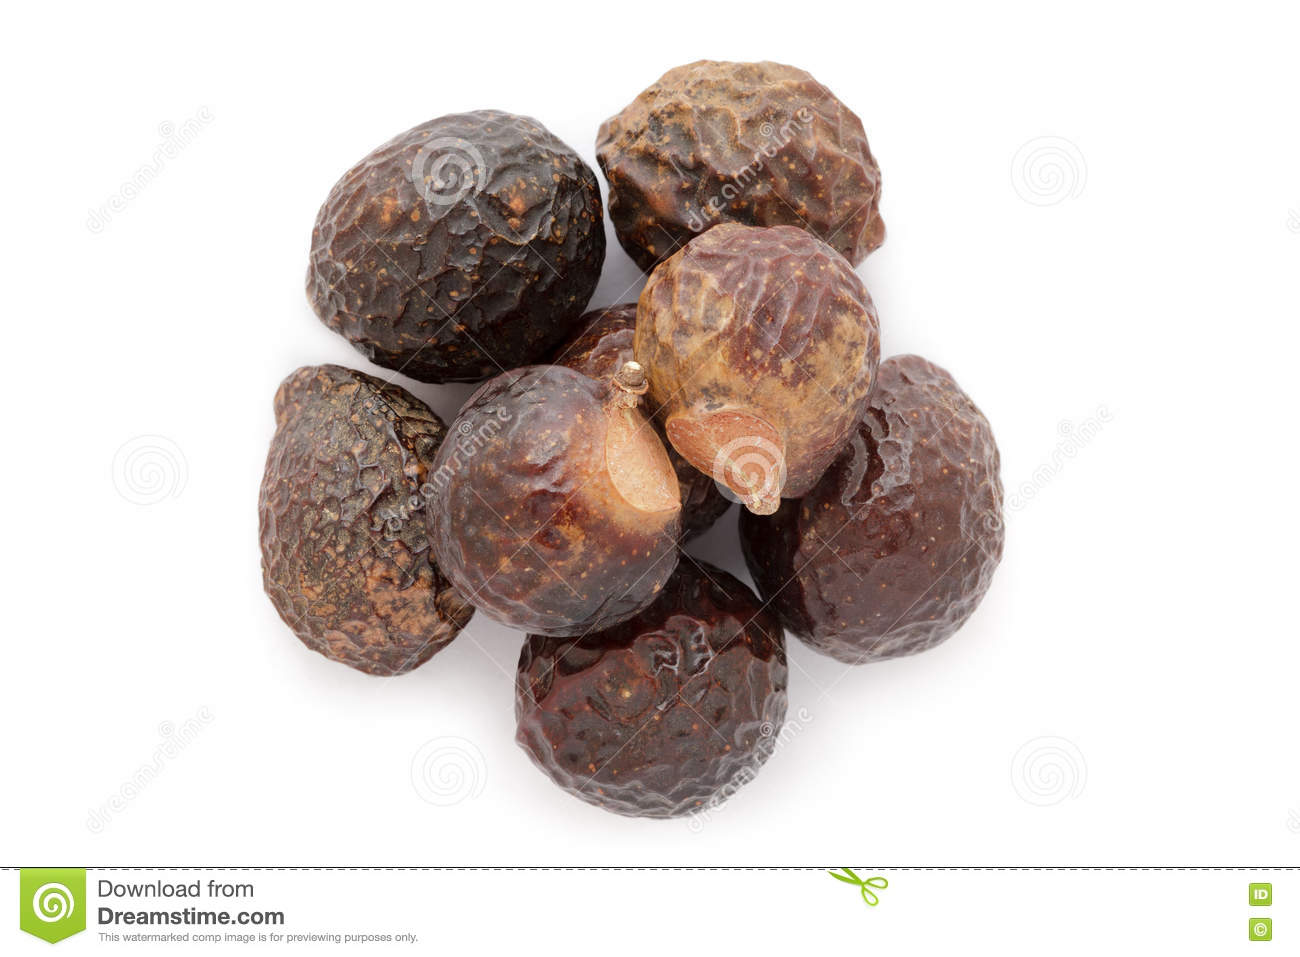 Organic Chinese Soapberry (Sapindus Mukorossi) Seeds. Stock Photo.